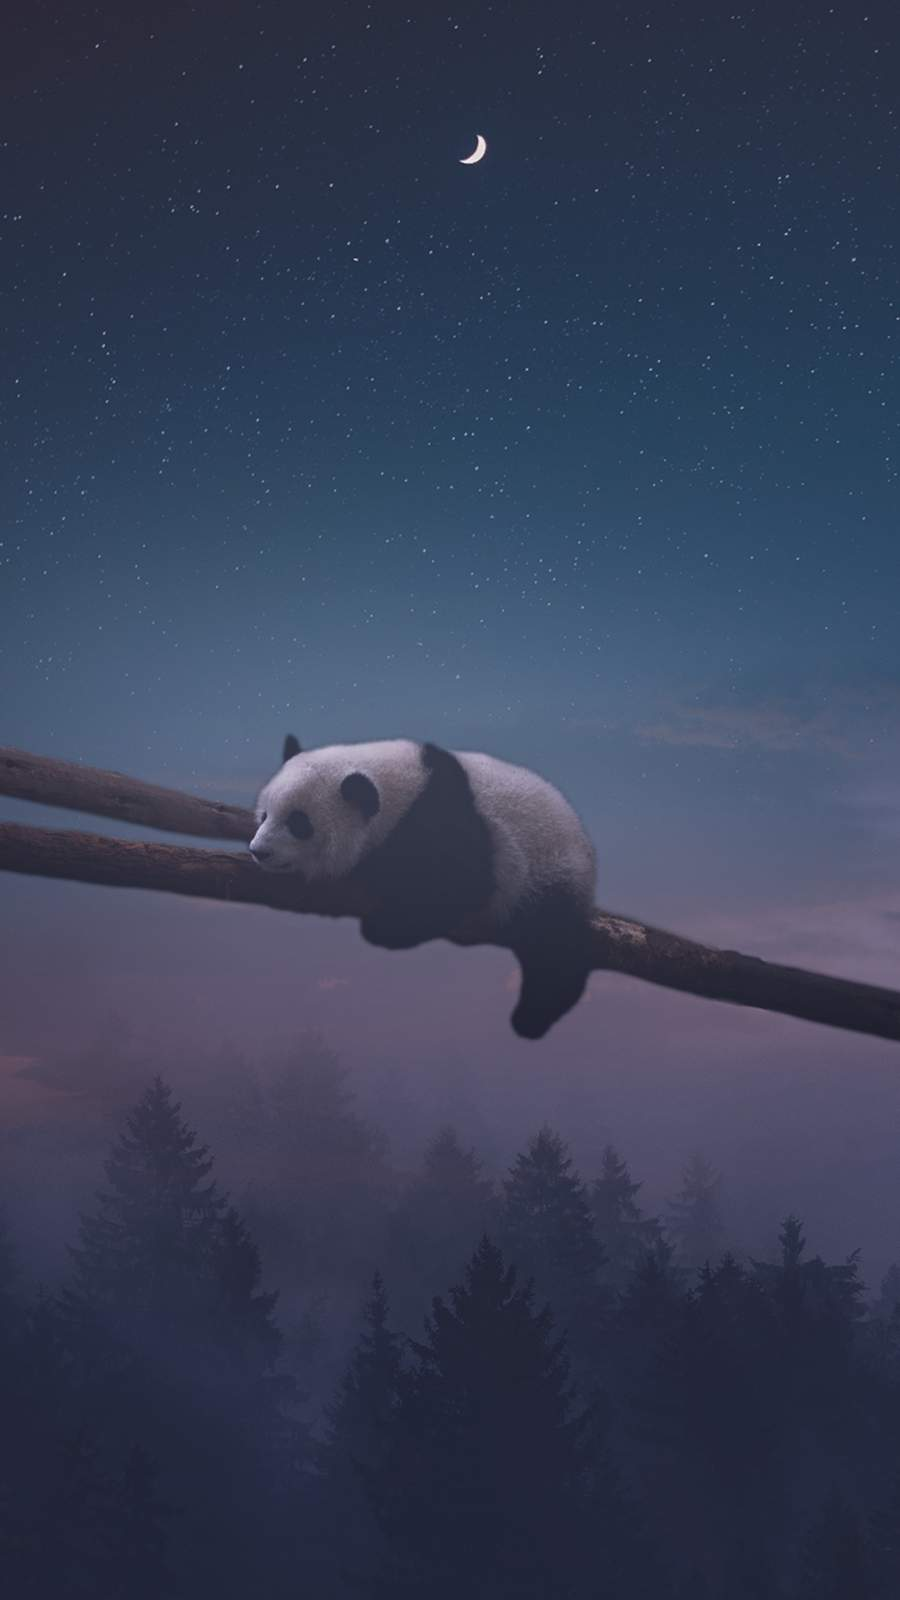 Sleeping Panda iPhone Wallpaper